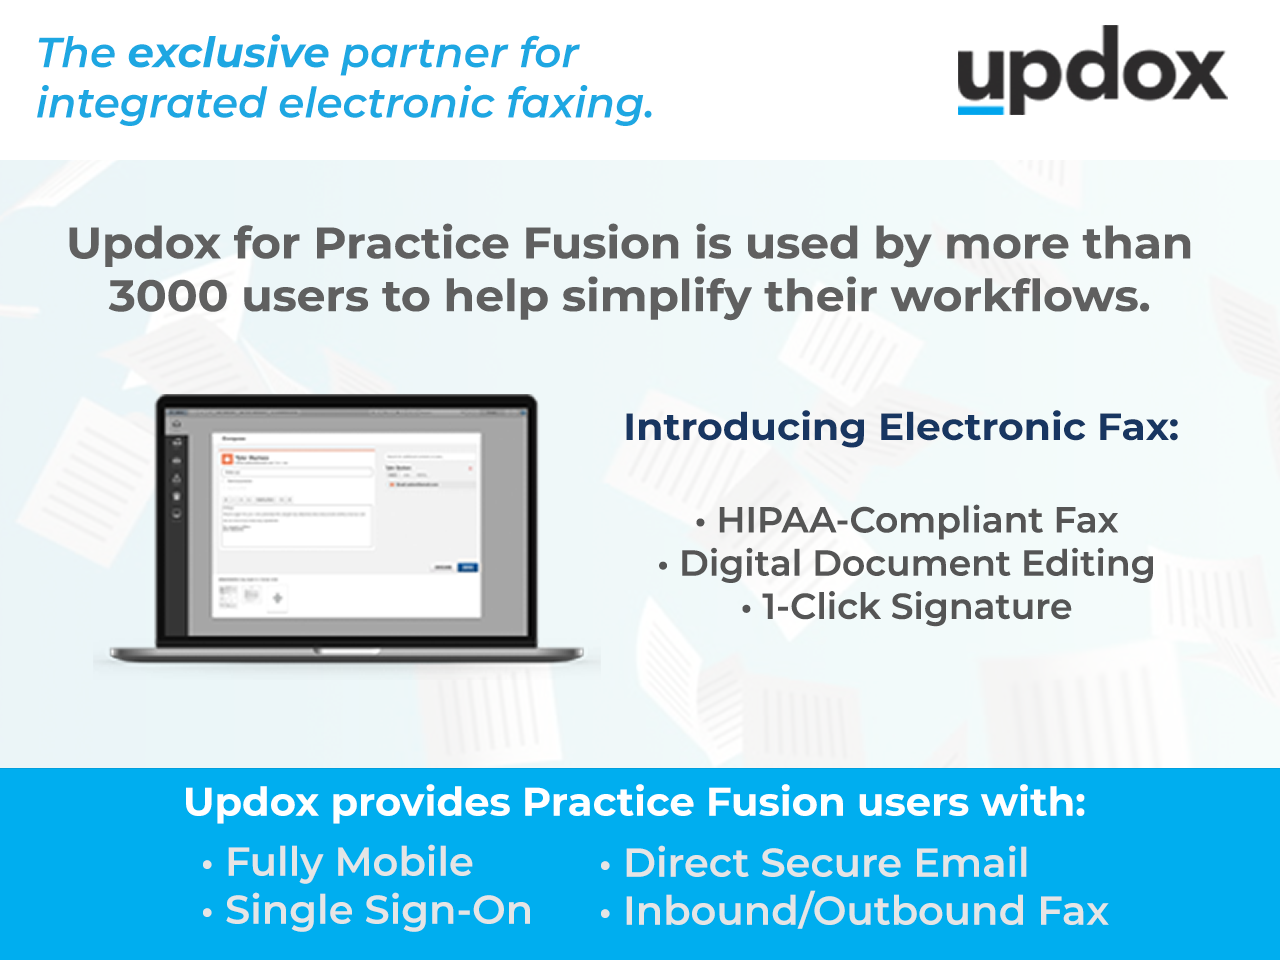 Updox for Practice Fusion is used by more than 3,000 user to help simplify their workflows.